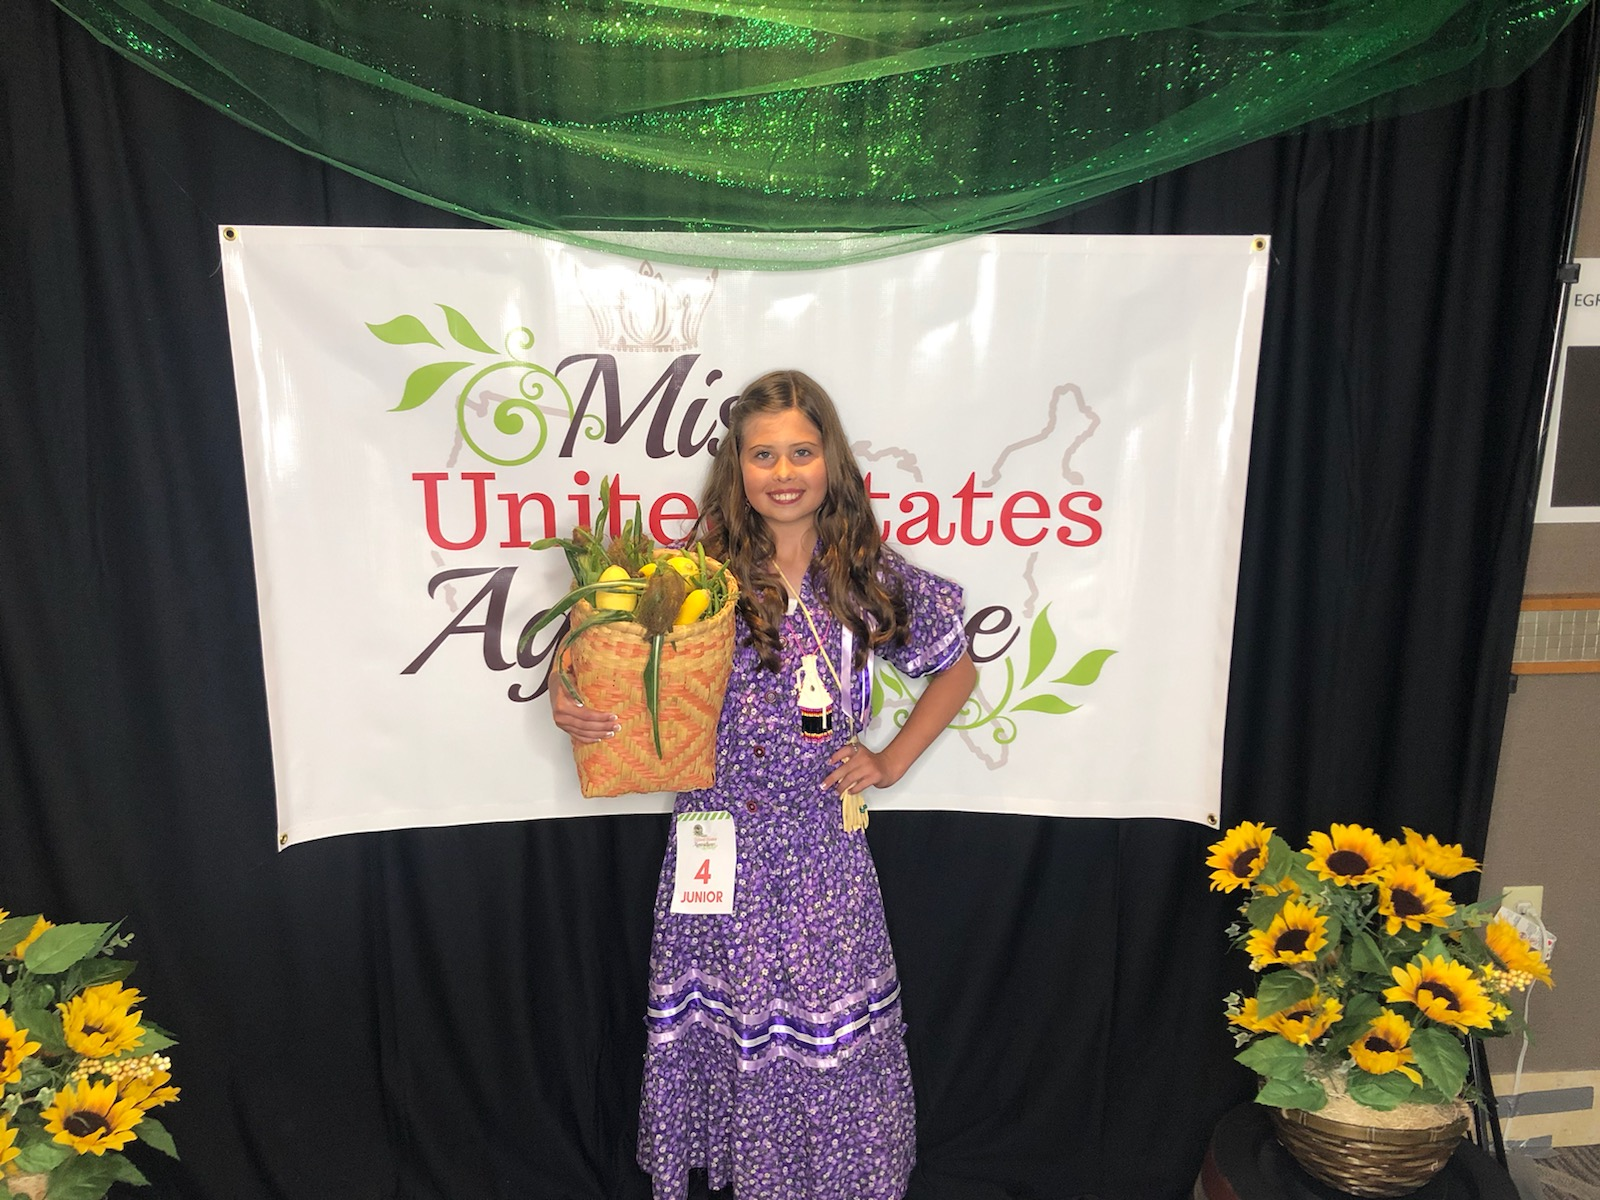 Muscogee (Creek) citizen crowned as National Junior Miss United States Agriculture